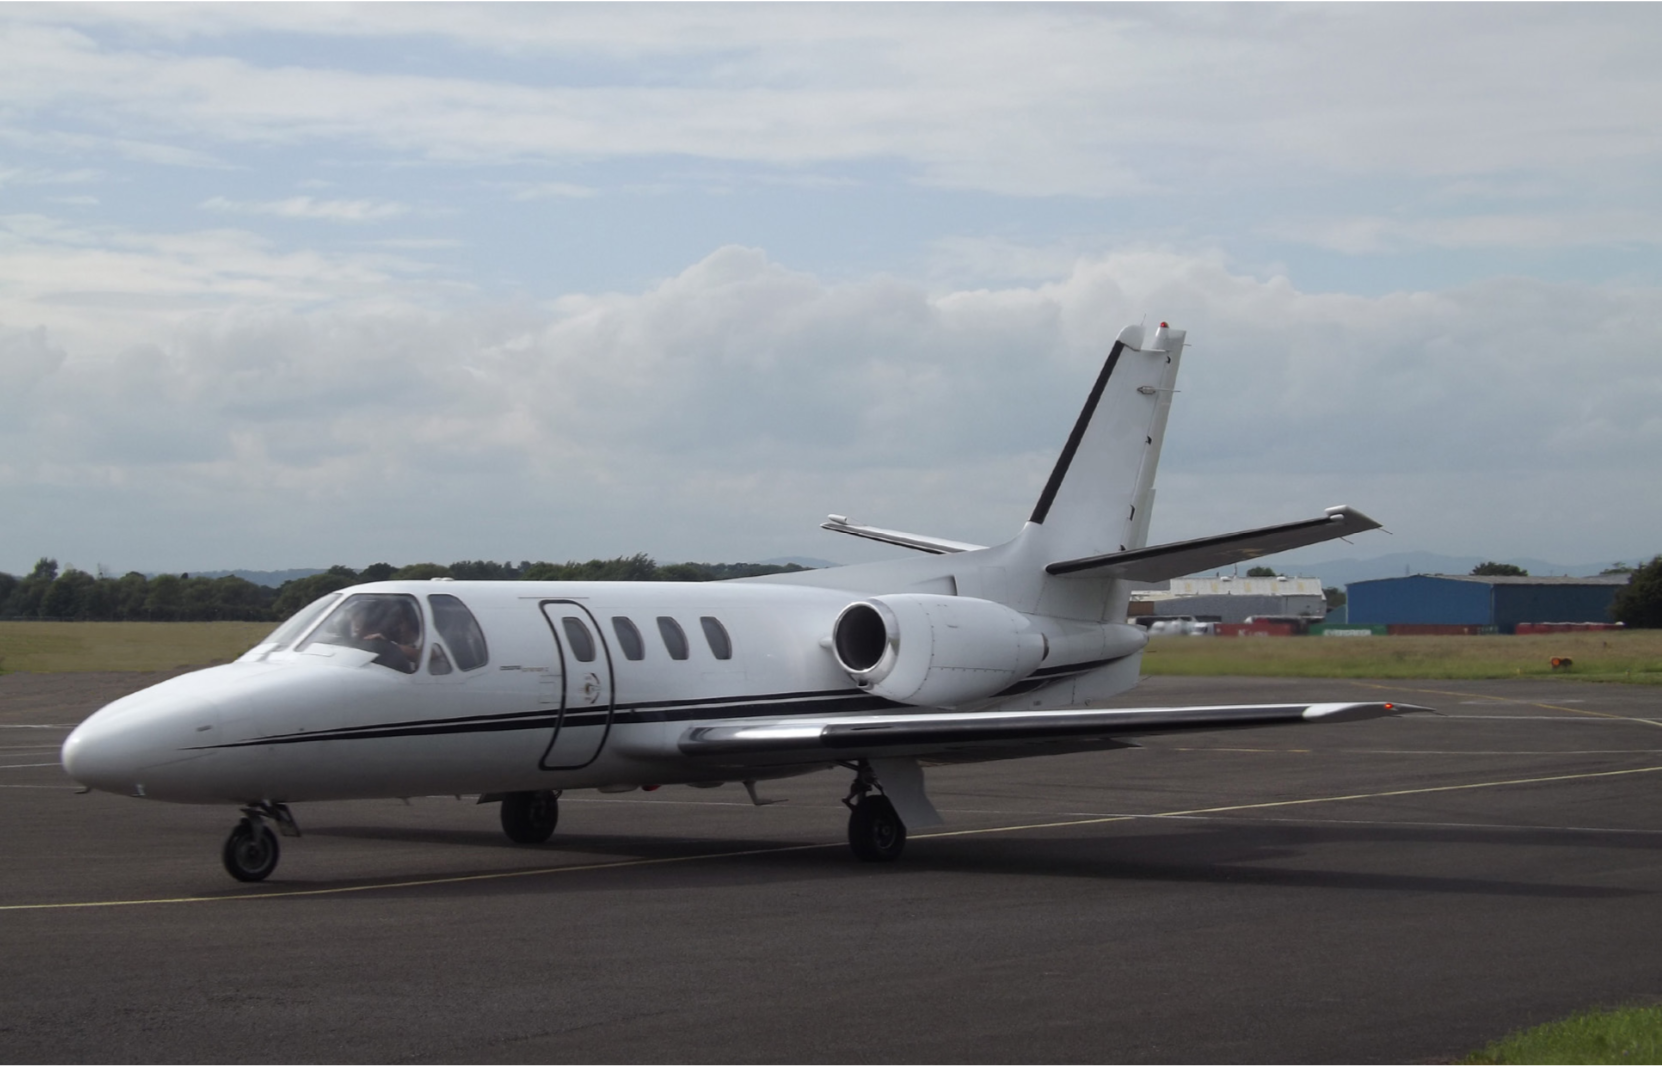 A Cessna Citation 500 similar to the accident airplane. Photo by James, courtesy of Wikipedia Commons